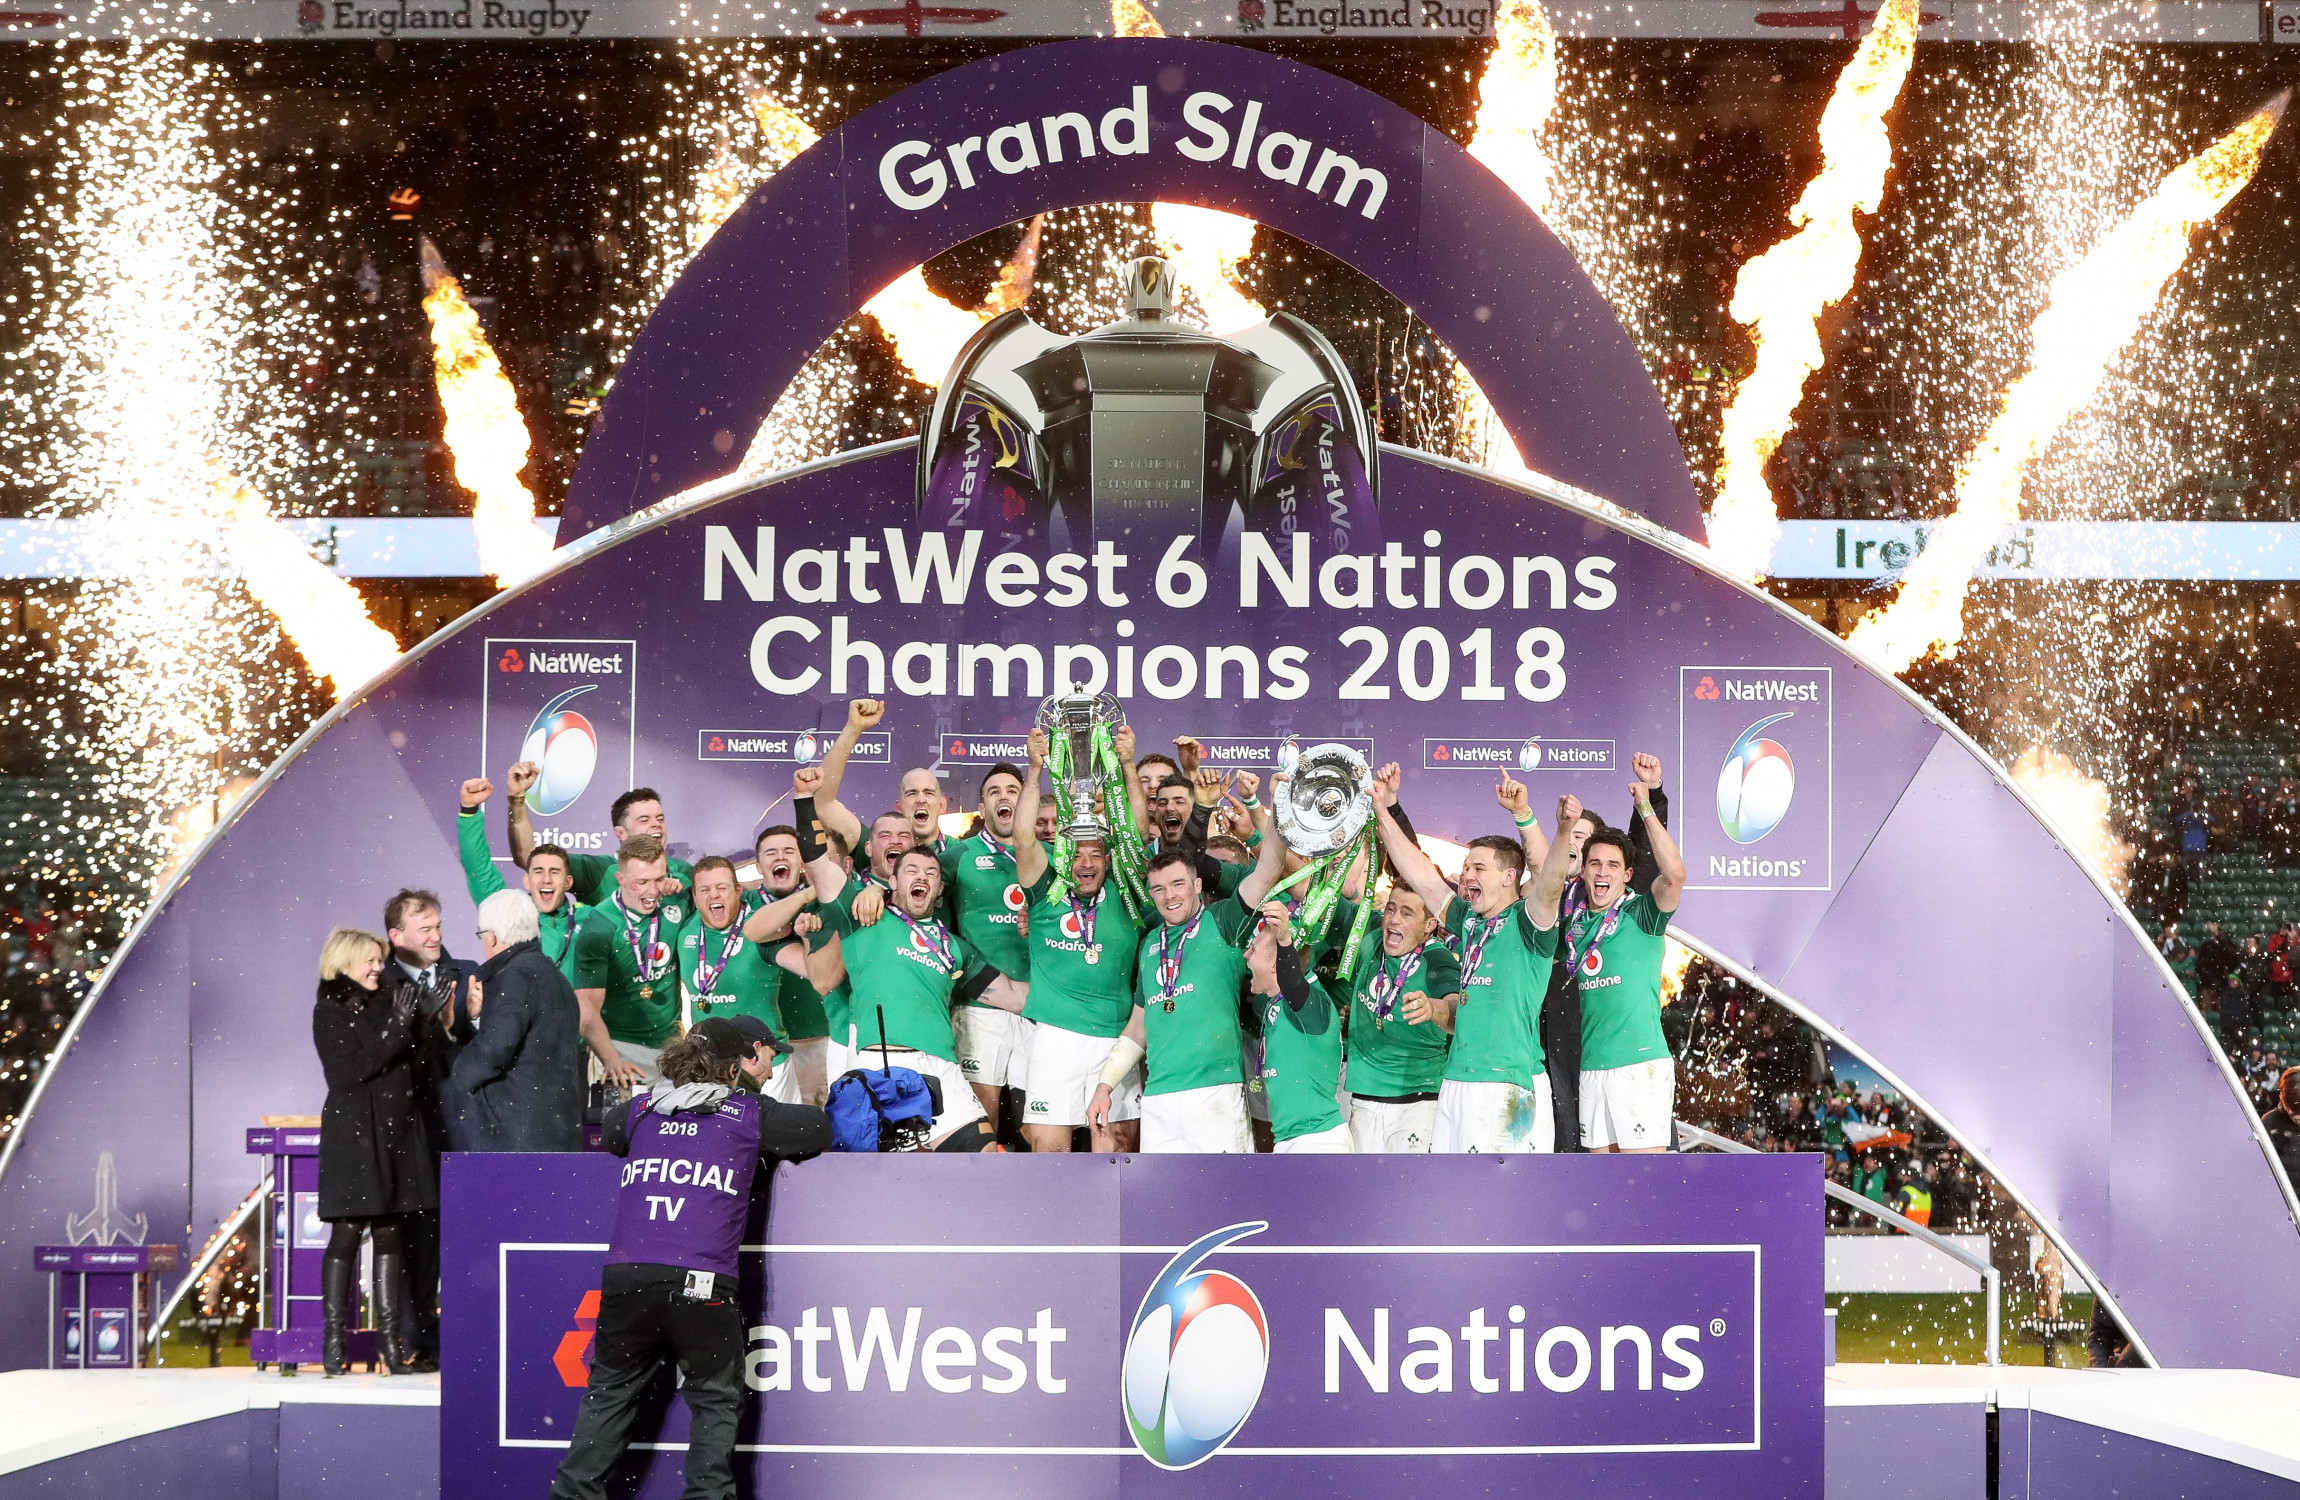 England loses lustre in Six Nations